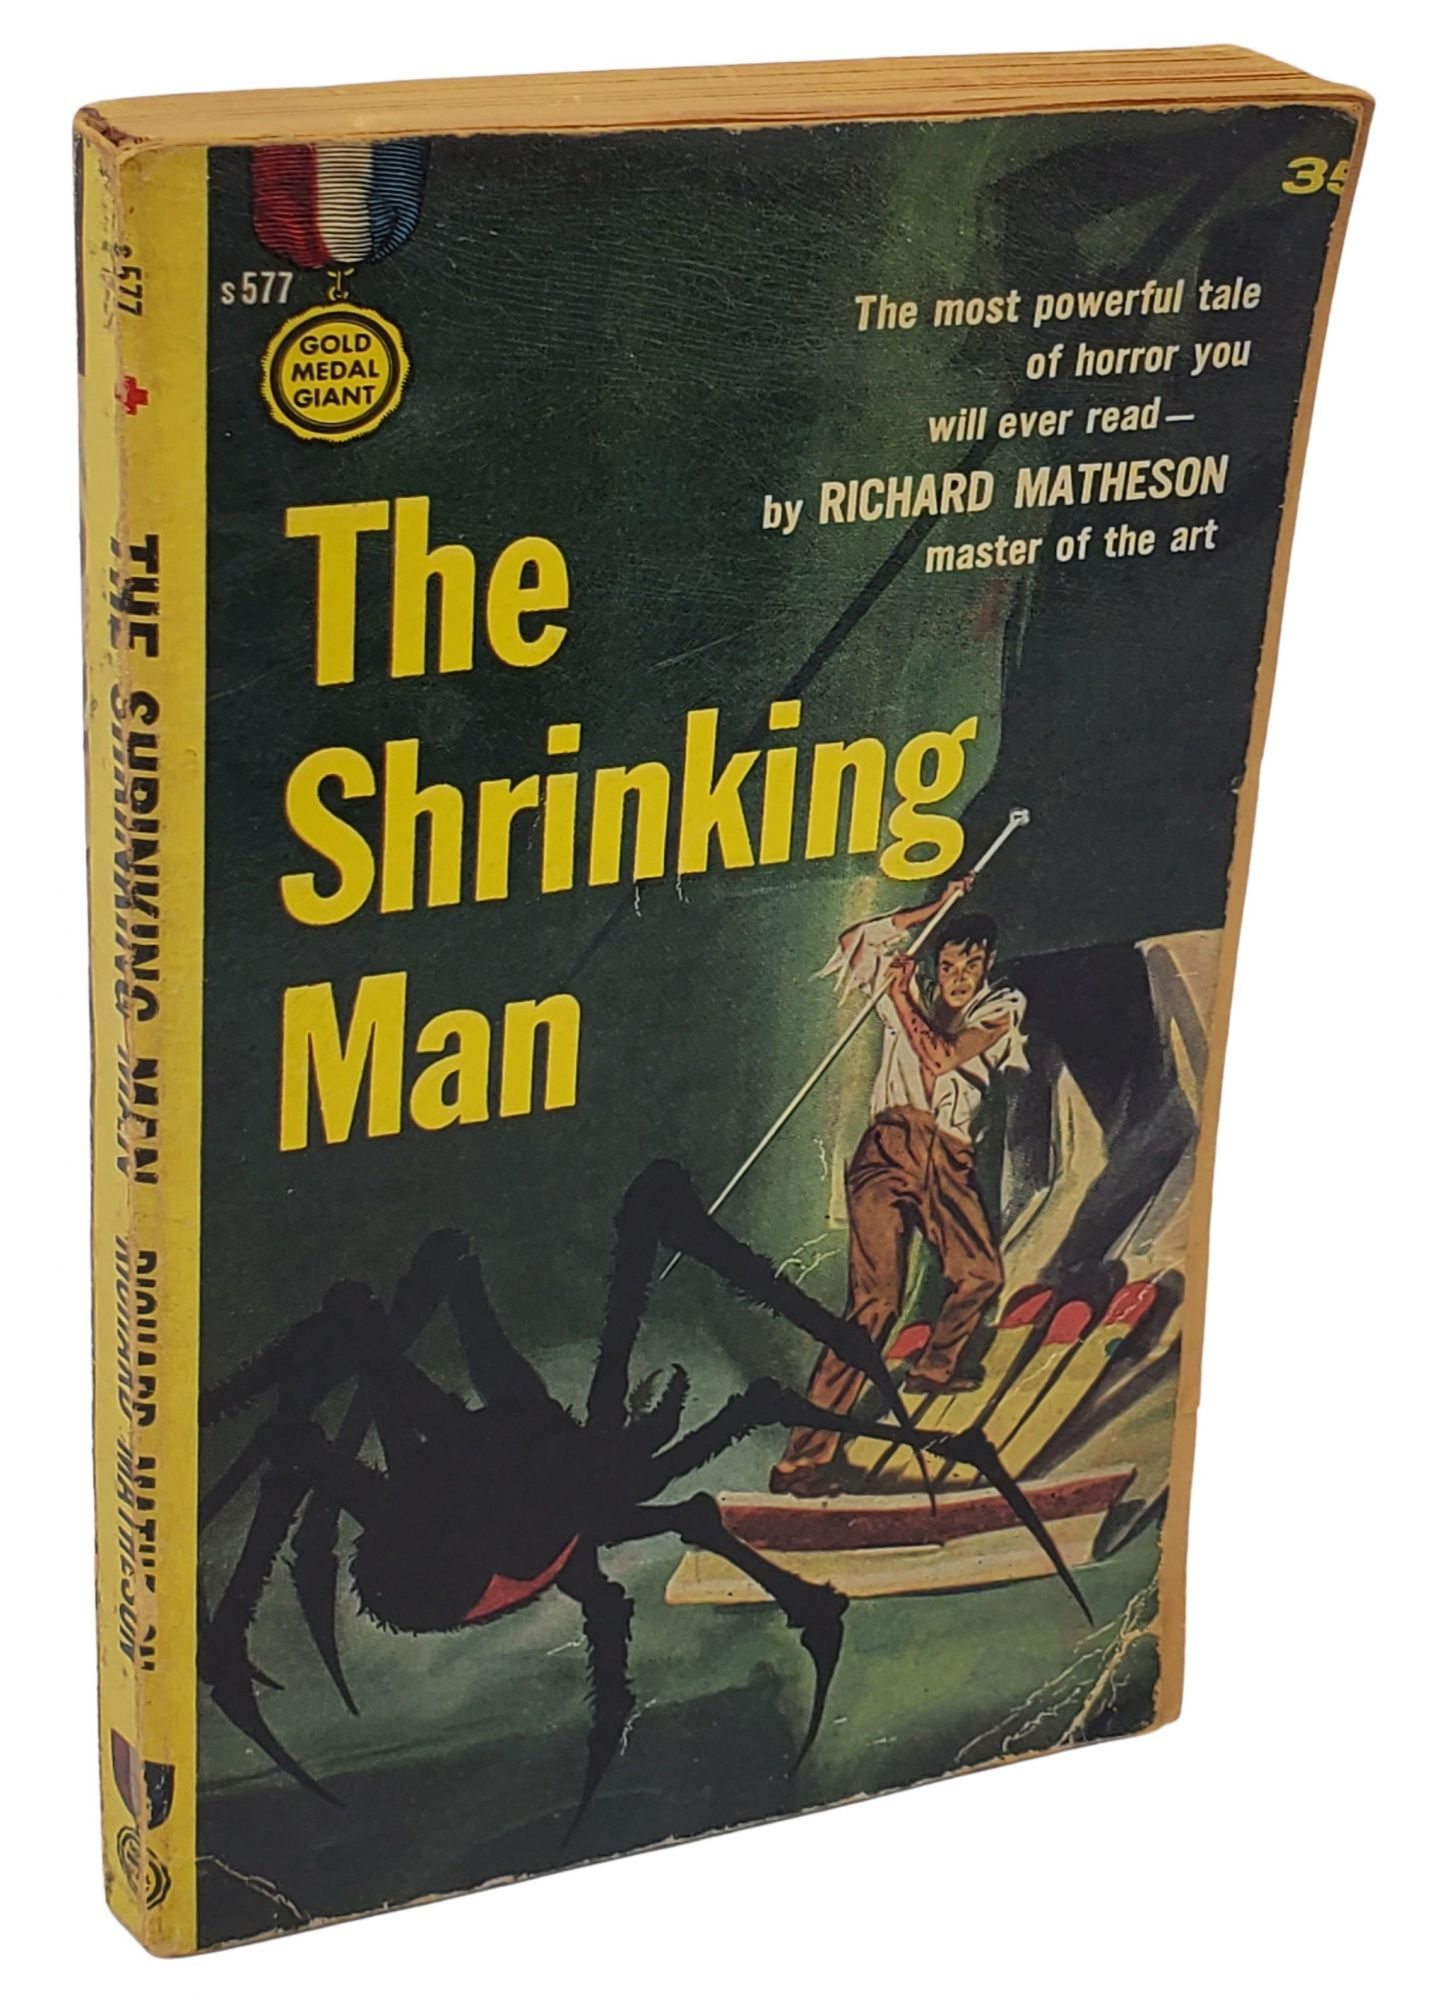 THE SHRINKING MAN. Richard Matheson.